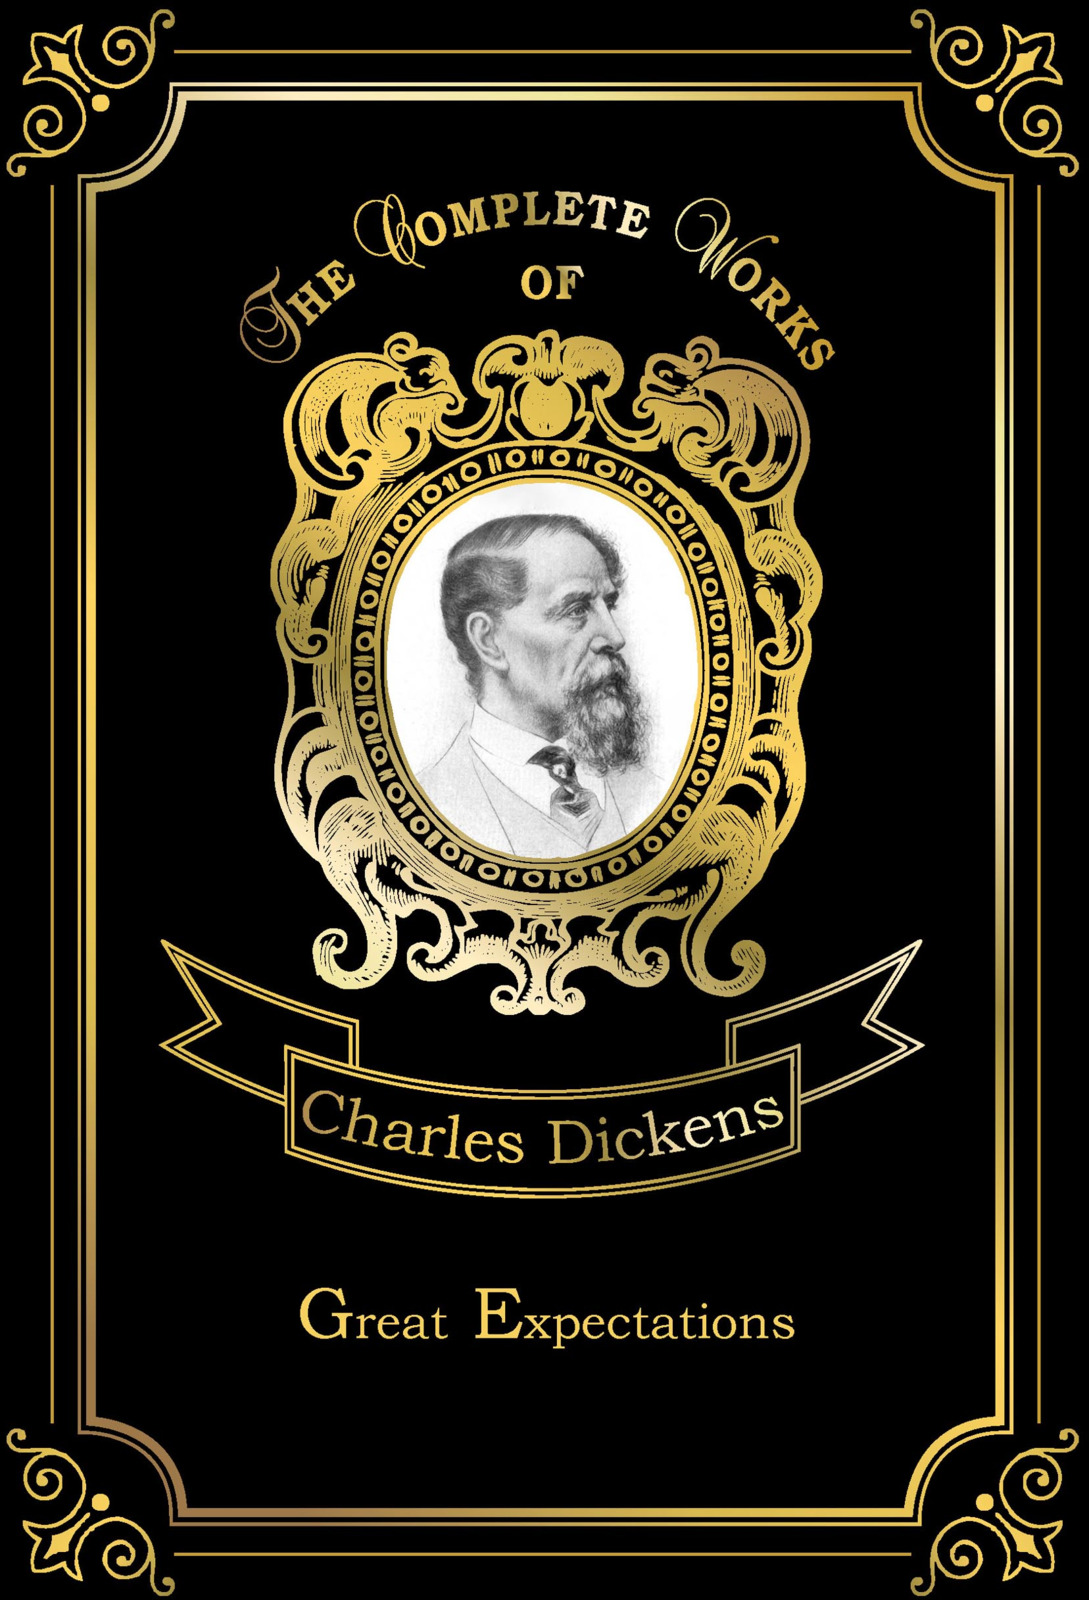 C. Dickens Great Expectations: Volume 5 dickens ch great expectations a novel in english 1861 большие надежды роман на английском языке 1861